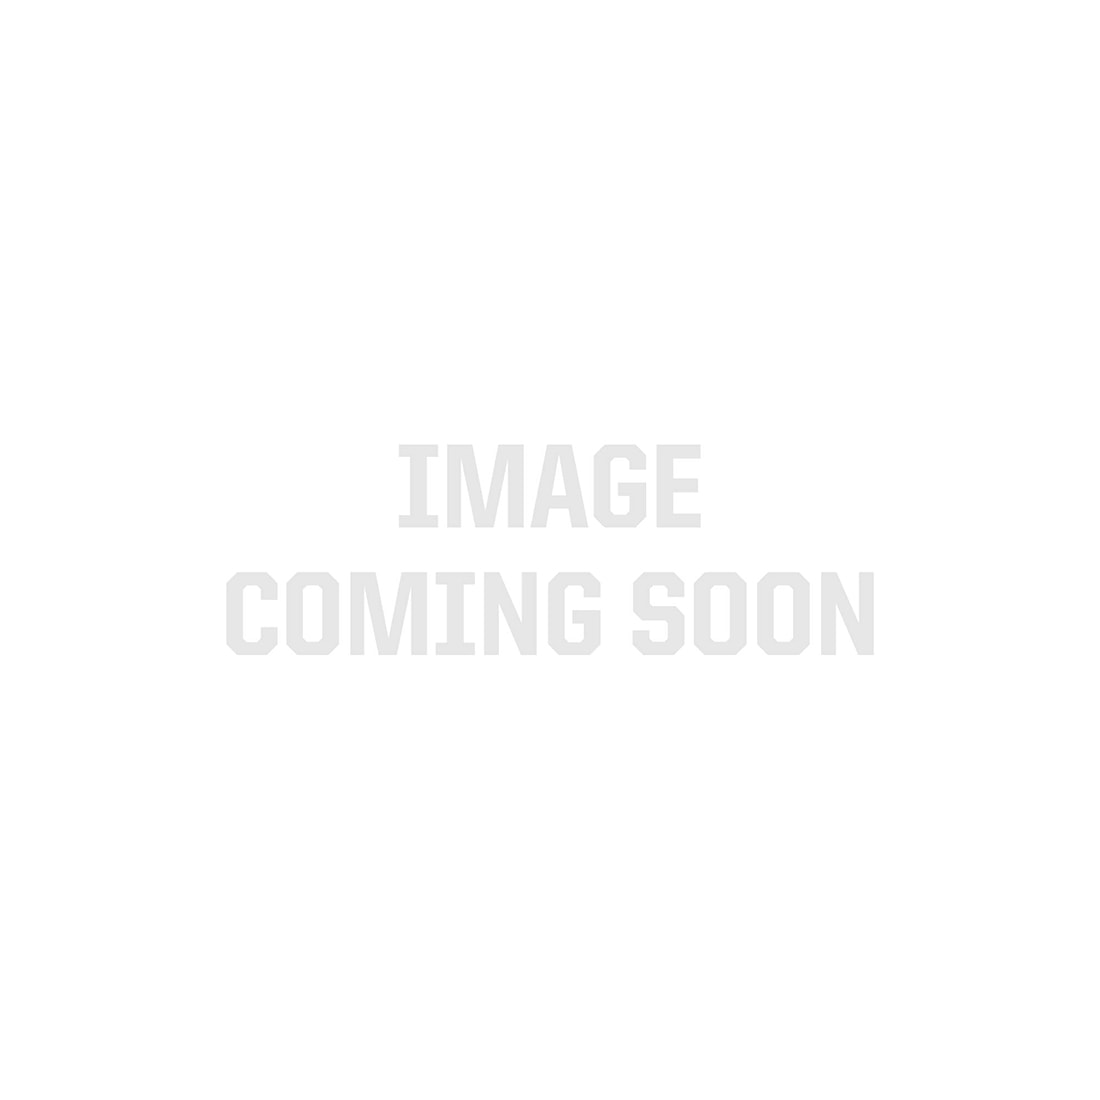 """Screw for Sheet Metal, Phillips, 18-8 Stainless Steel, No. 4, 5/16"""" Long"""